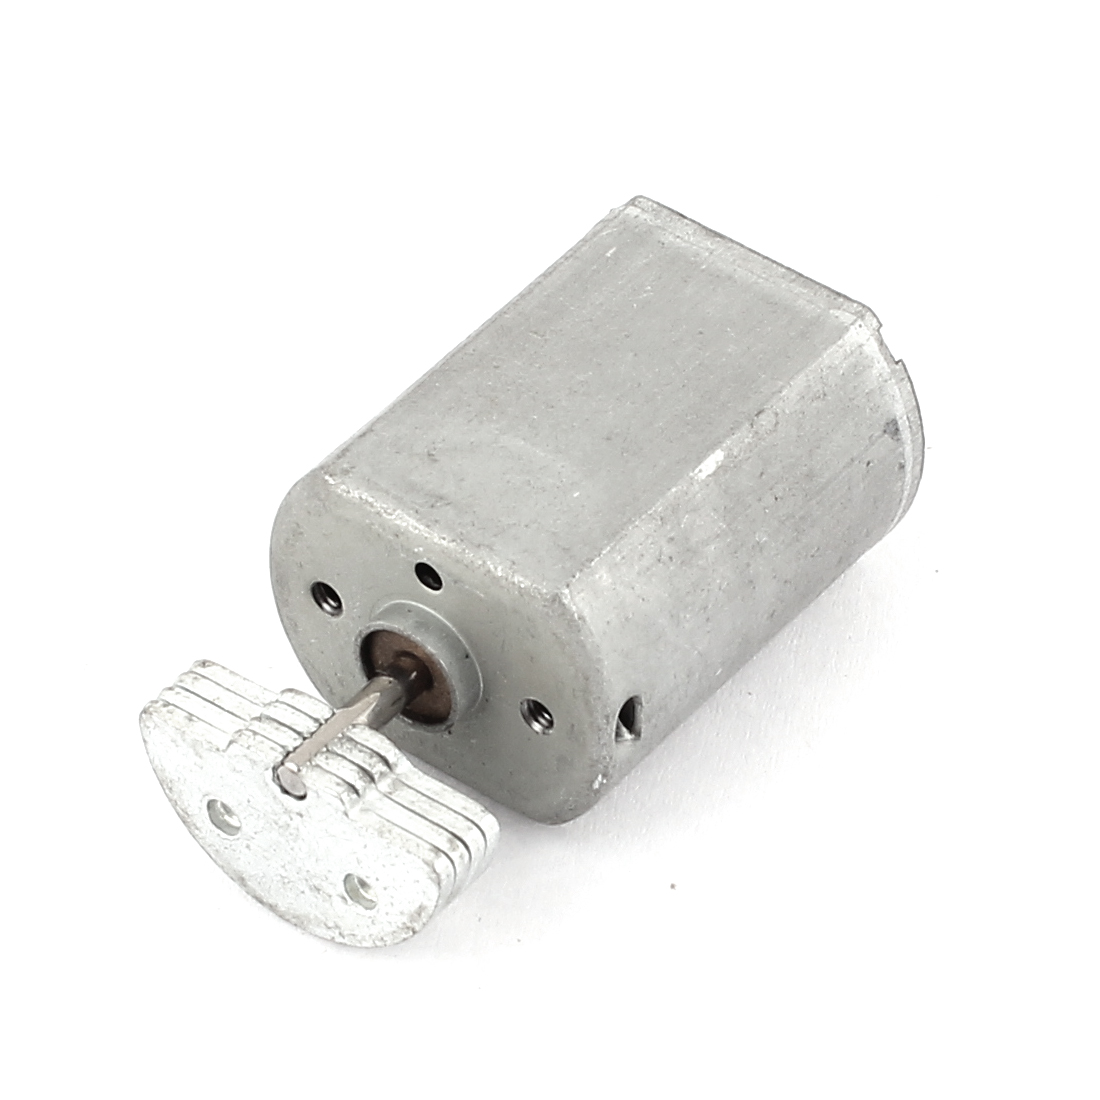 DC 1.5-4.5V 18000RPM Vibration Vibrating Electric Micro Motor for Massager